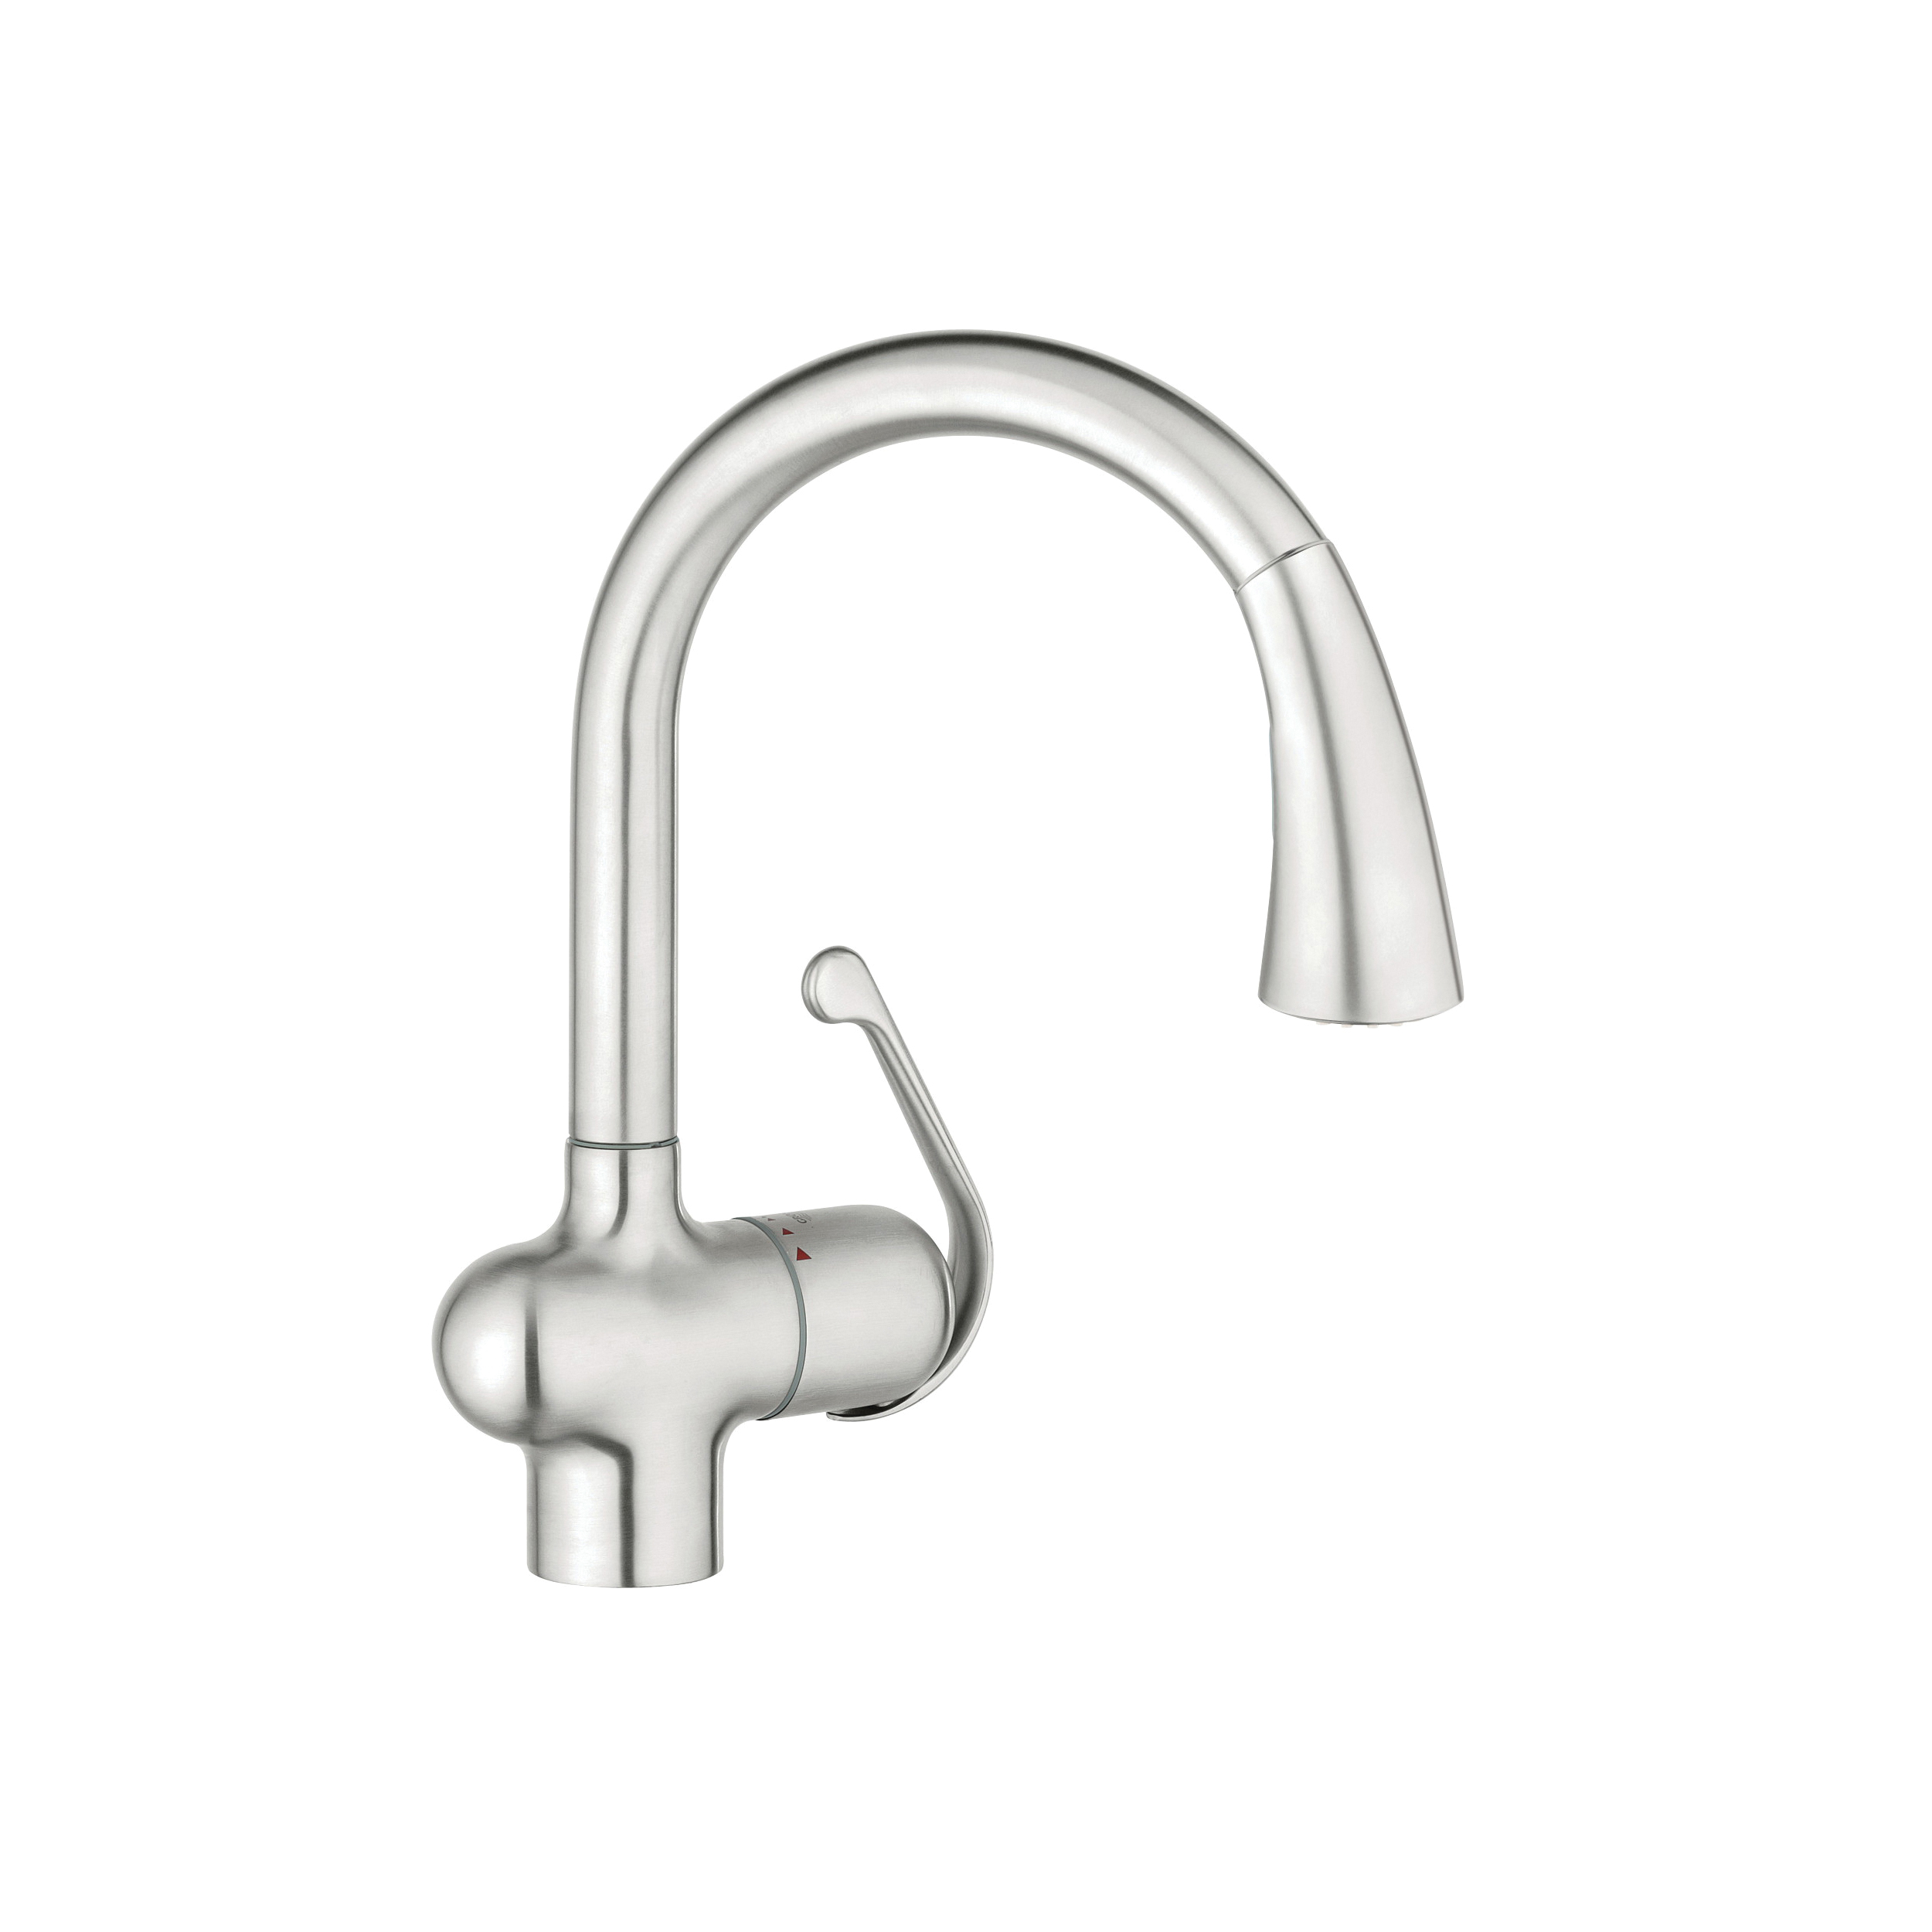 GROHE 33755SD1 Ladylux™ Sink Mixer, 1.75 gpm, 1 Faucet Hole, Brushed Stainless Steel, 1 Handle, Import